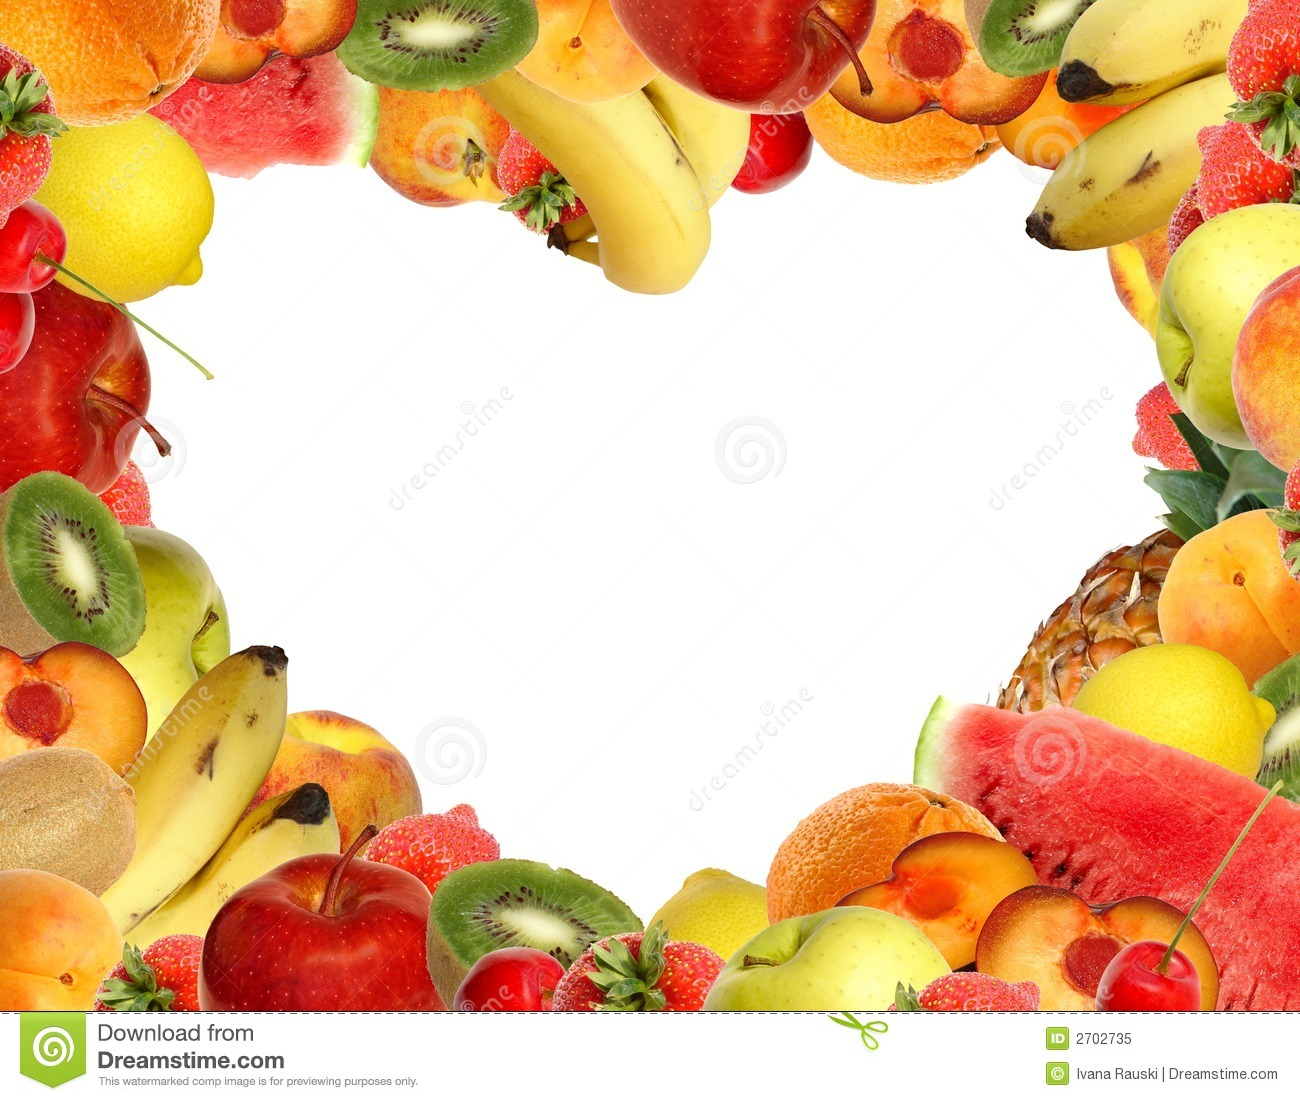 Fruit And Vegetable Border Clip Art Heart-shaped fruit frame